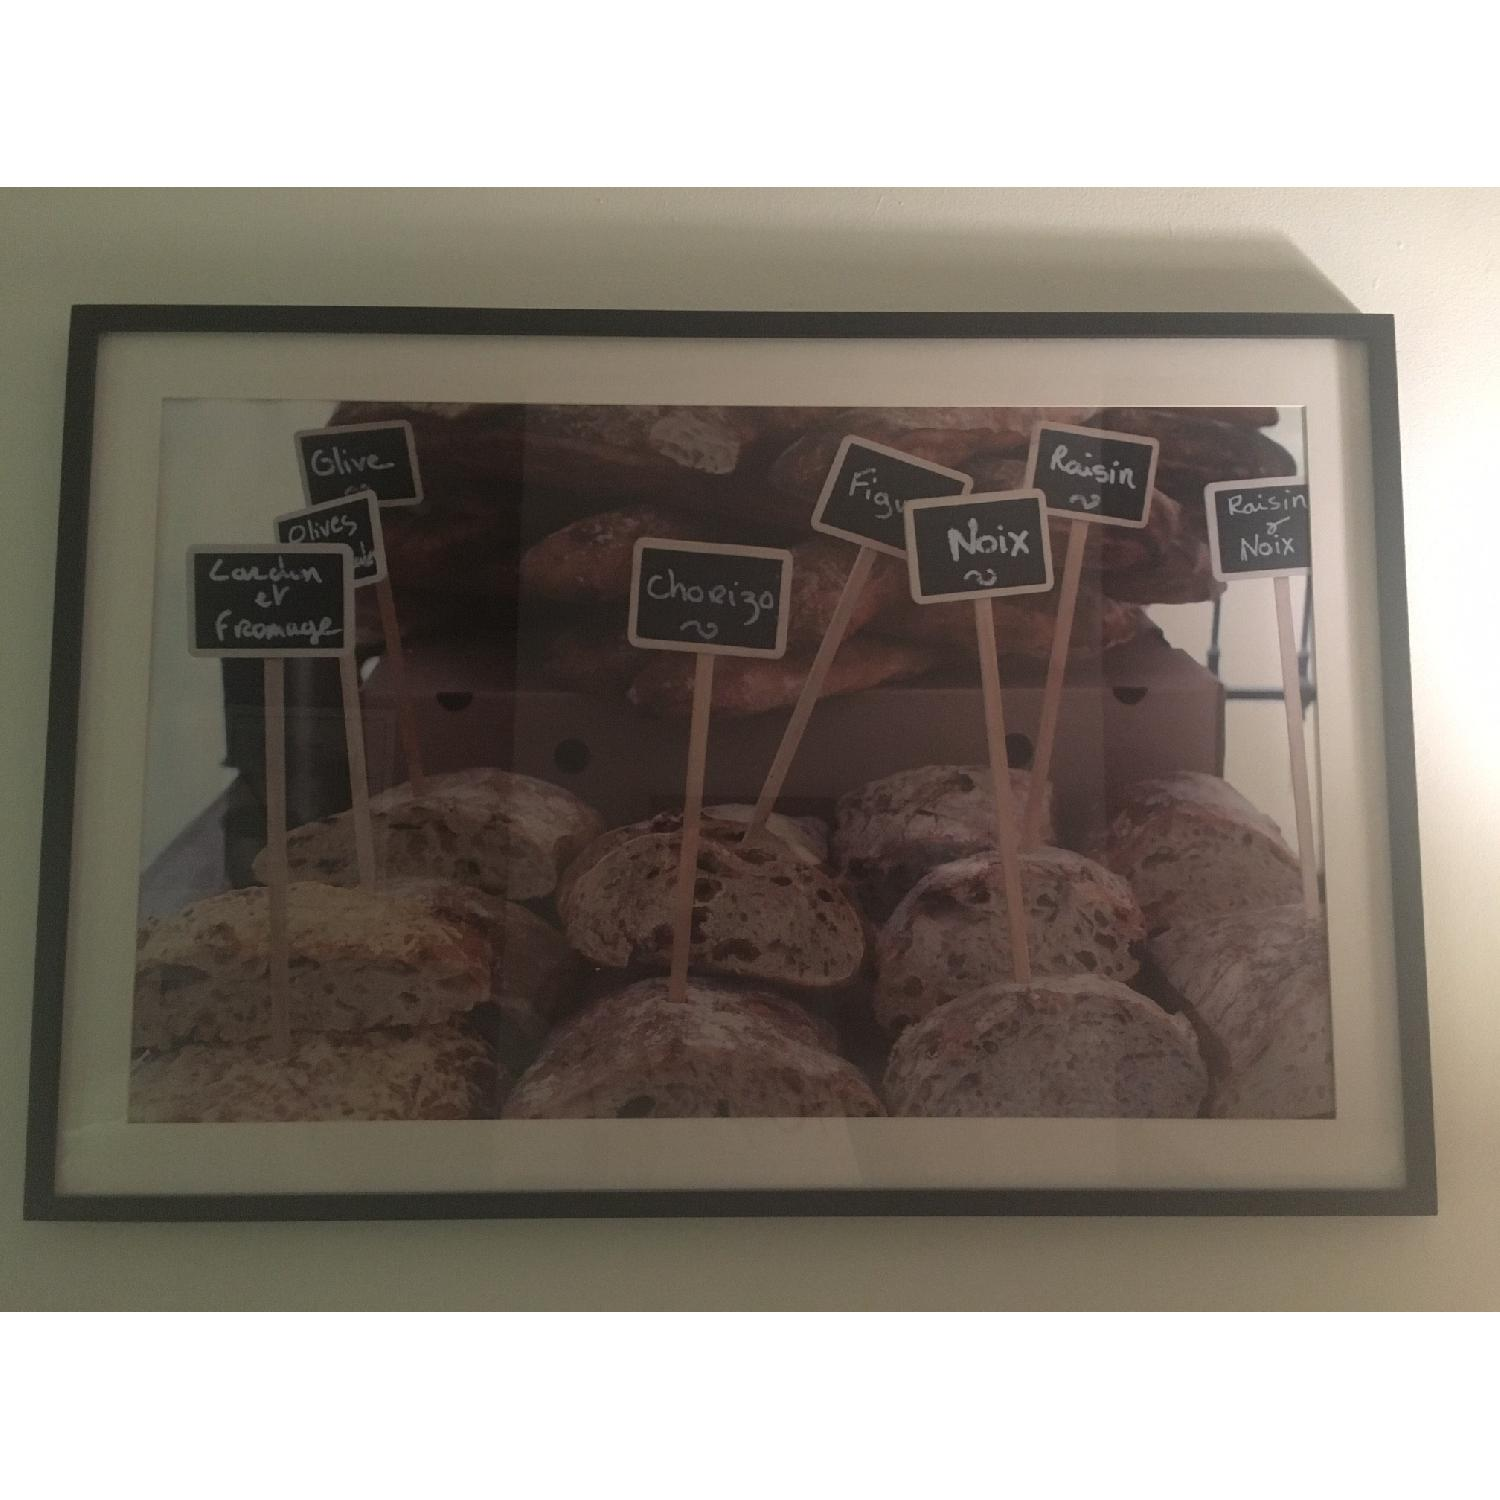 Pottery Barn Framed French Market Days Picture - image-3